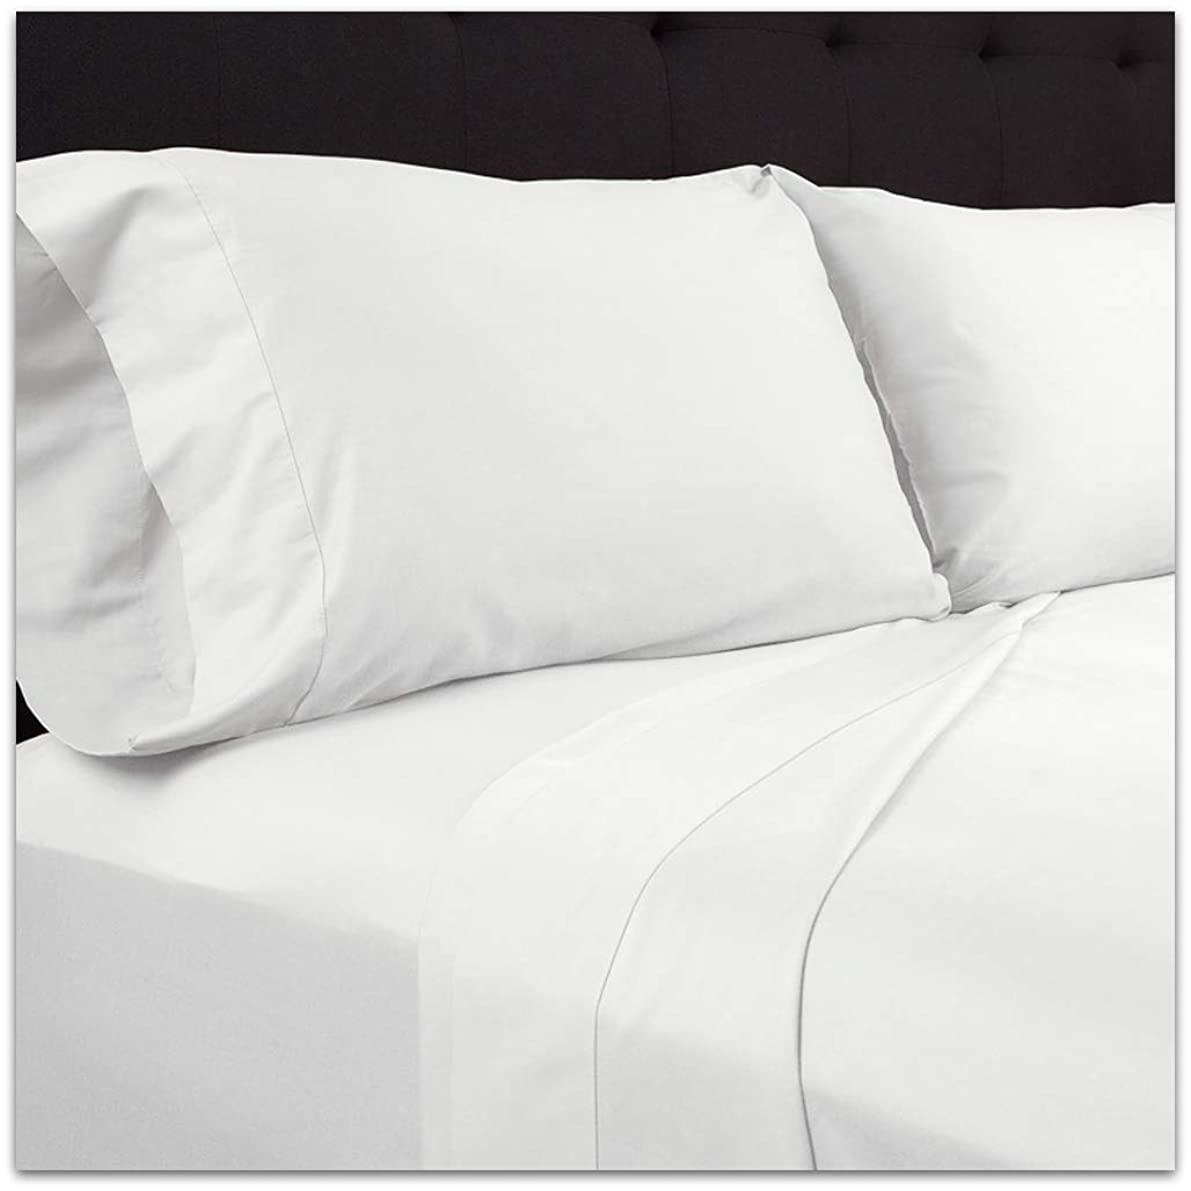 Plushy Comfort Heavy Queen Pillow Case (20 x 30 Inch) - 2 Piece in 100 Percent Egyptian Cotton White Solid